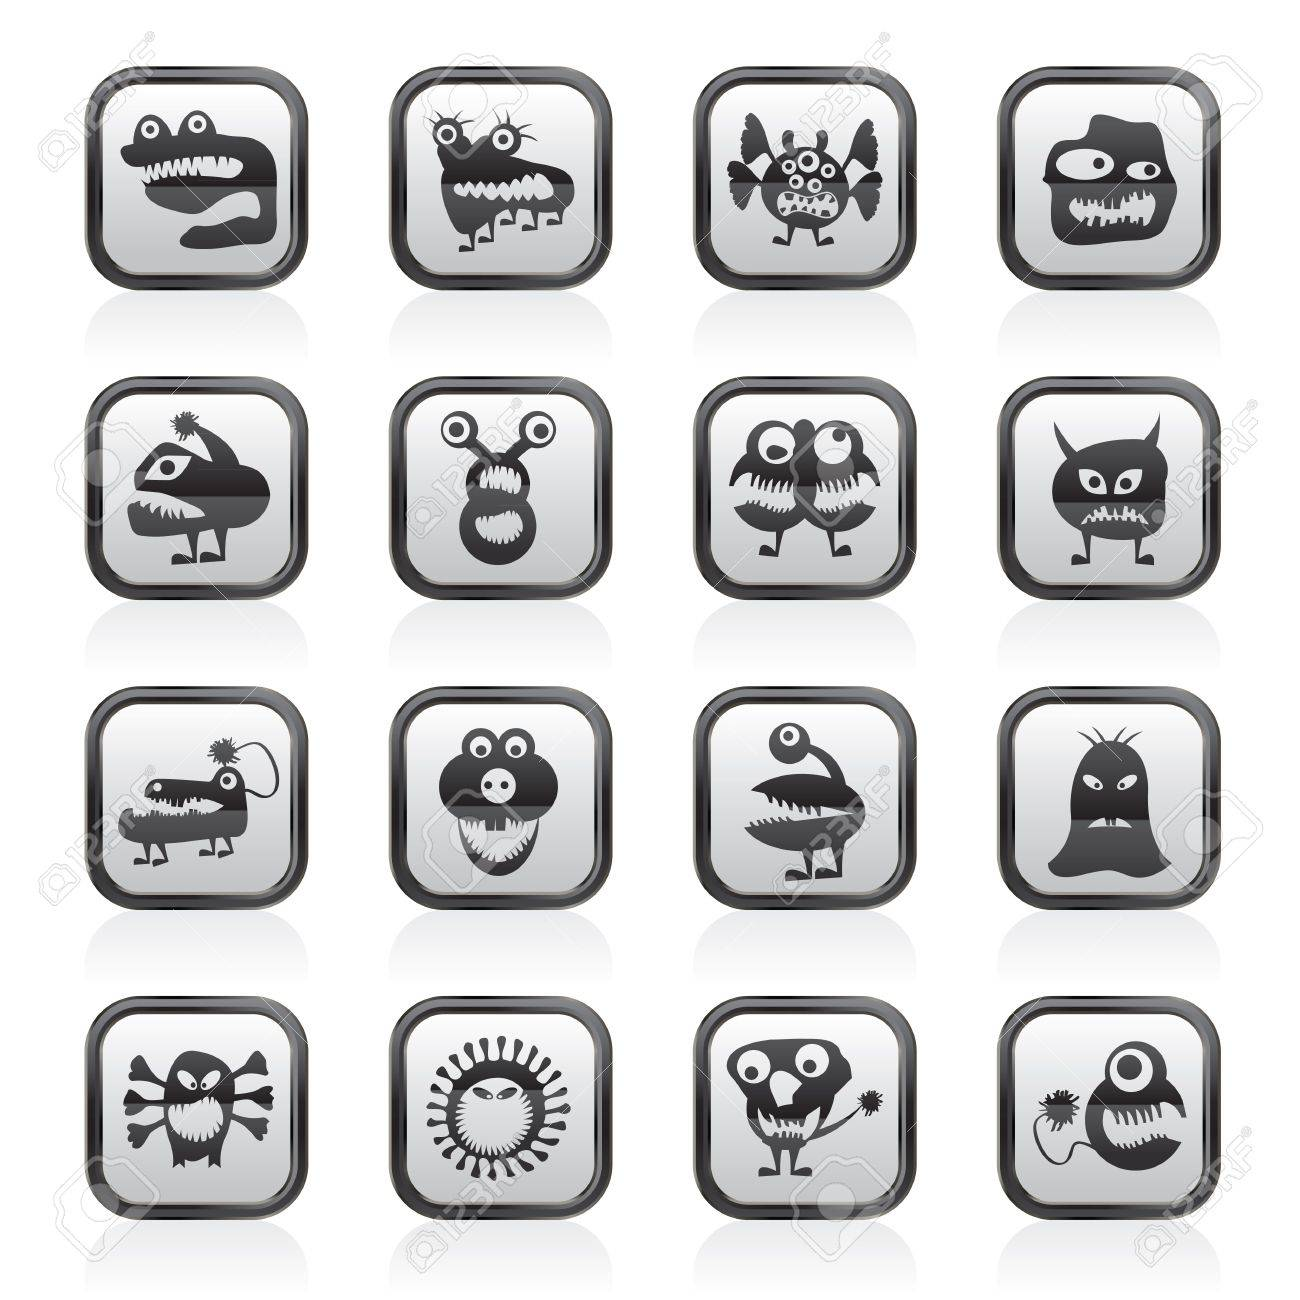 various abstract monsters illustration - vector icon set Stock Vector - 19721899